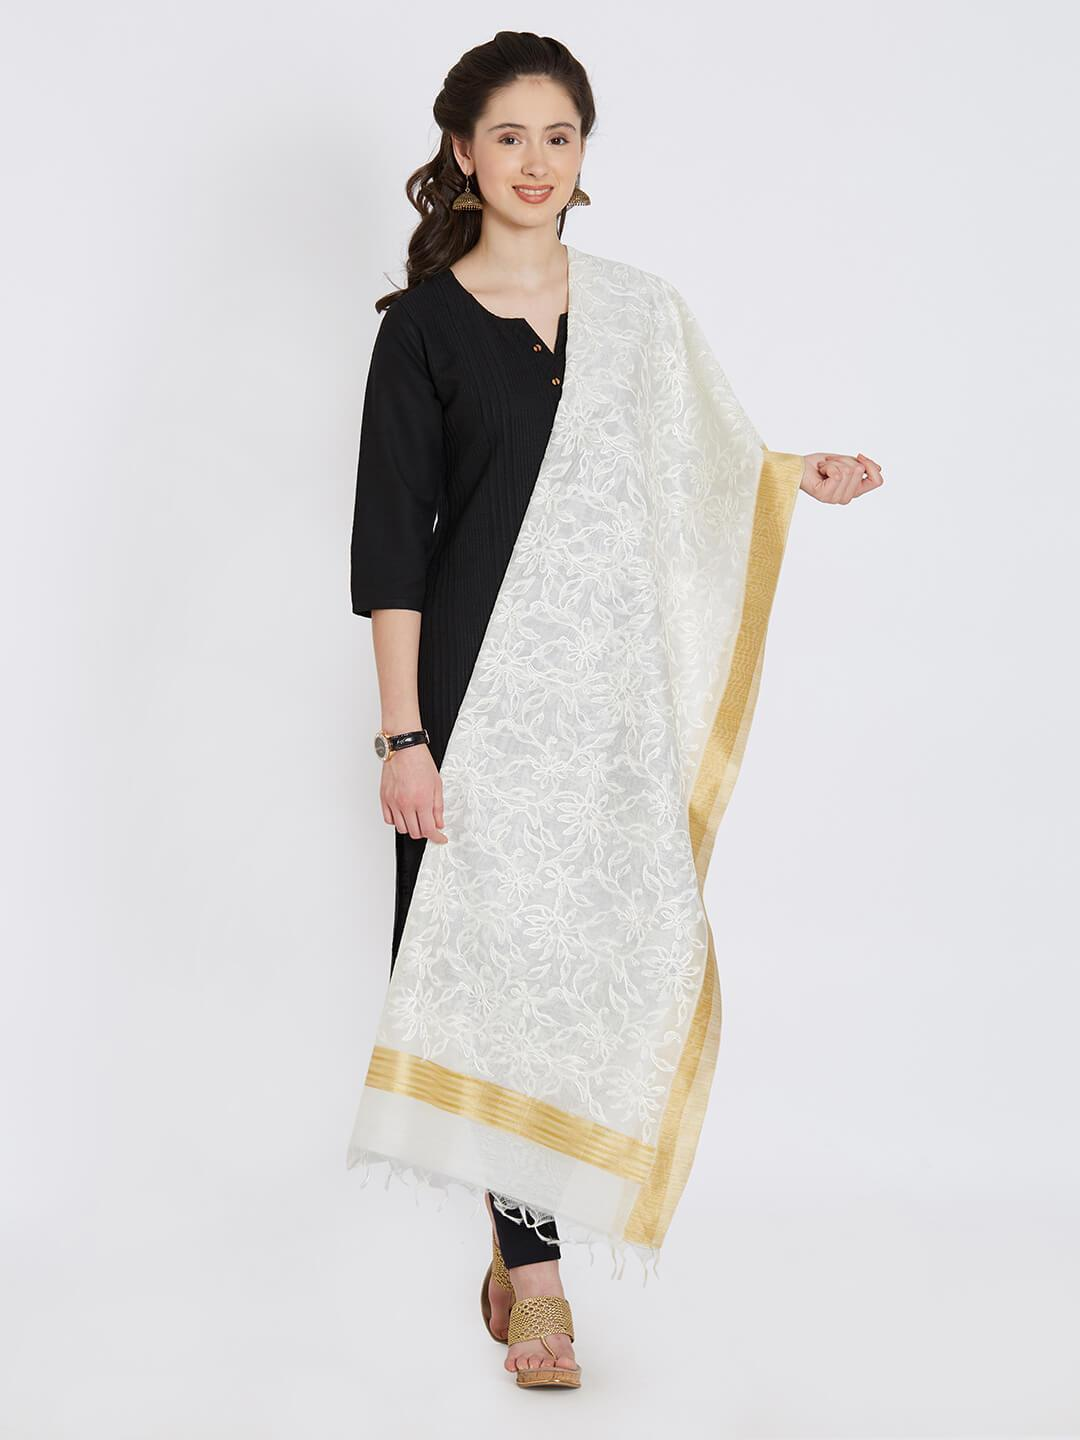 CraftsCollection.in - Off-White Chanderi Dupatta with Embroidery